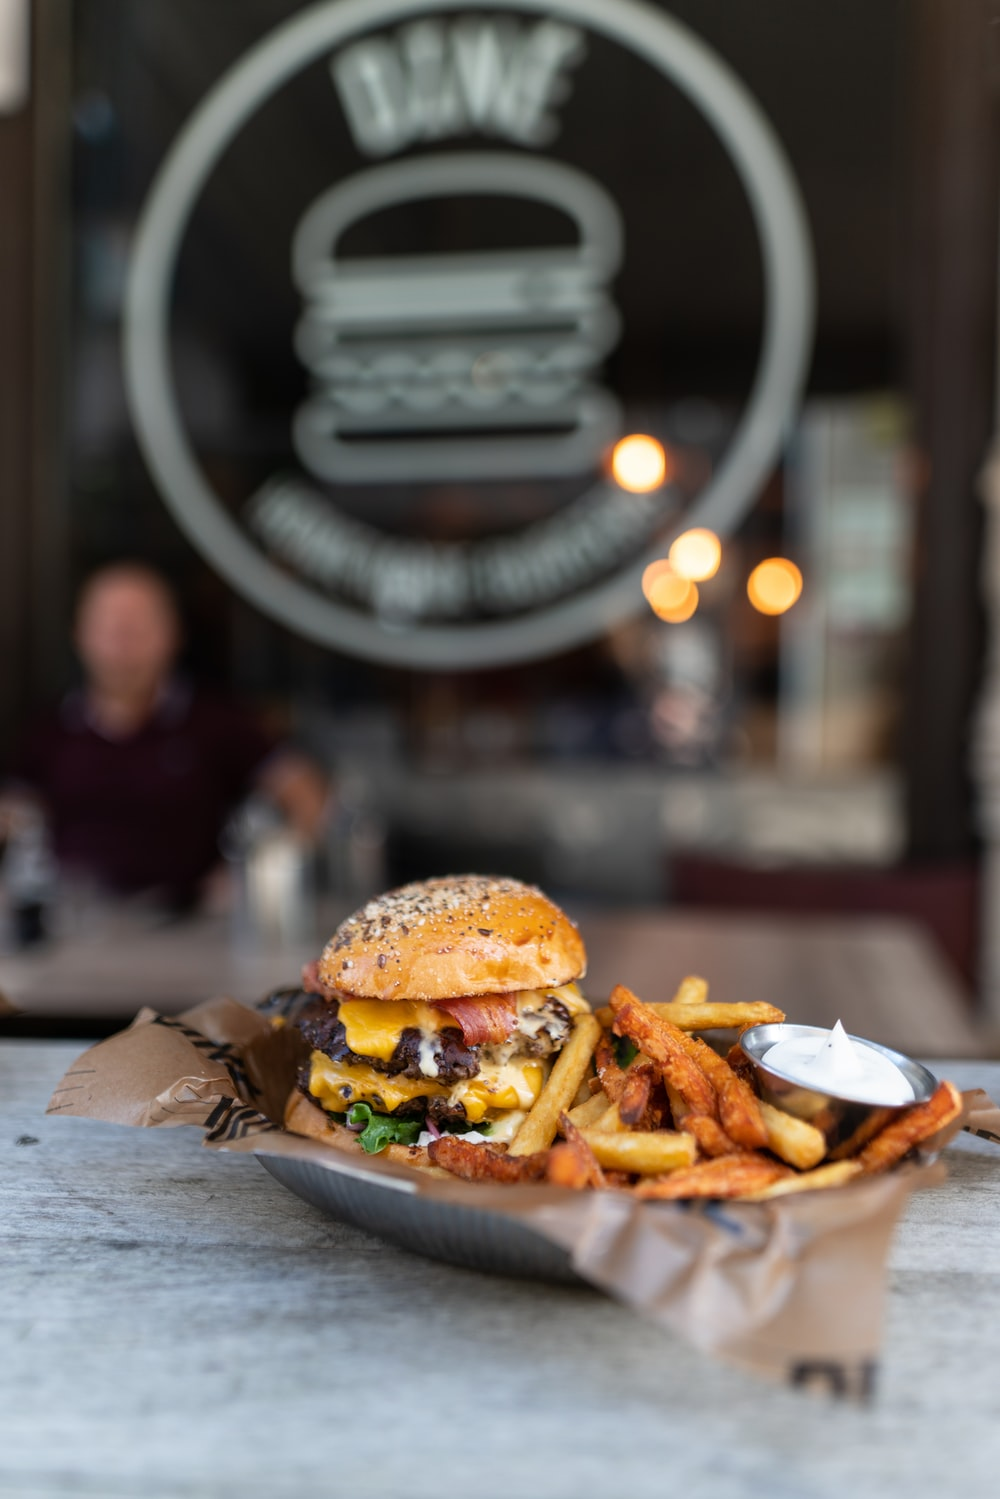 burger with fries on brown wooden table